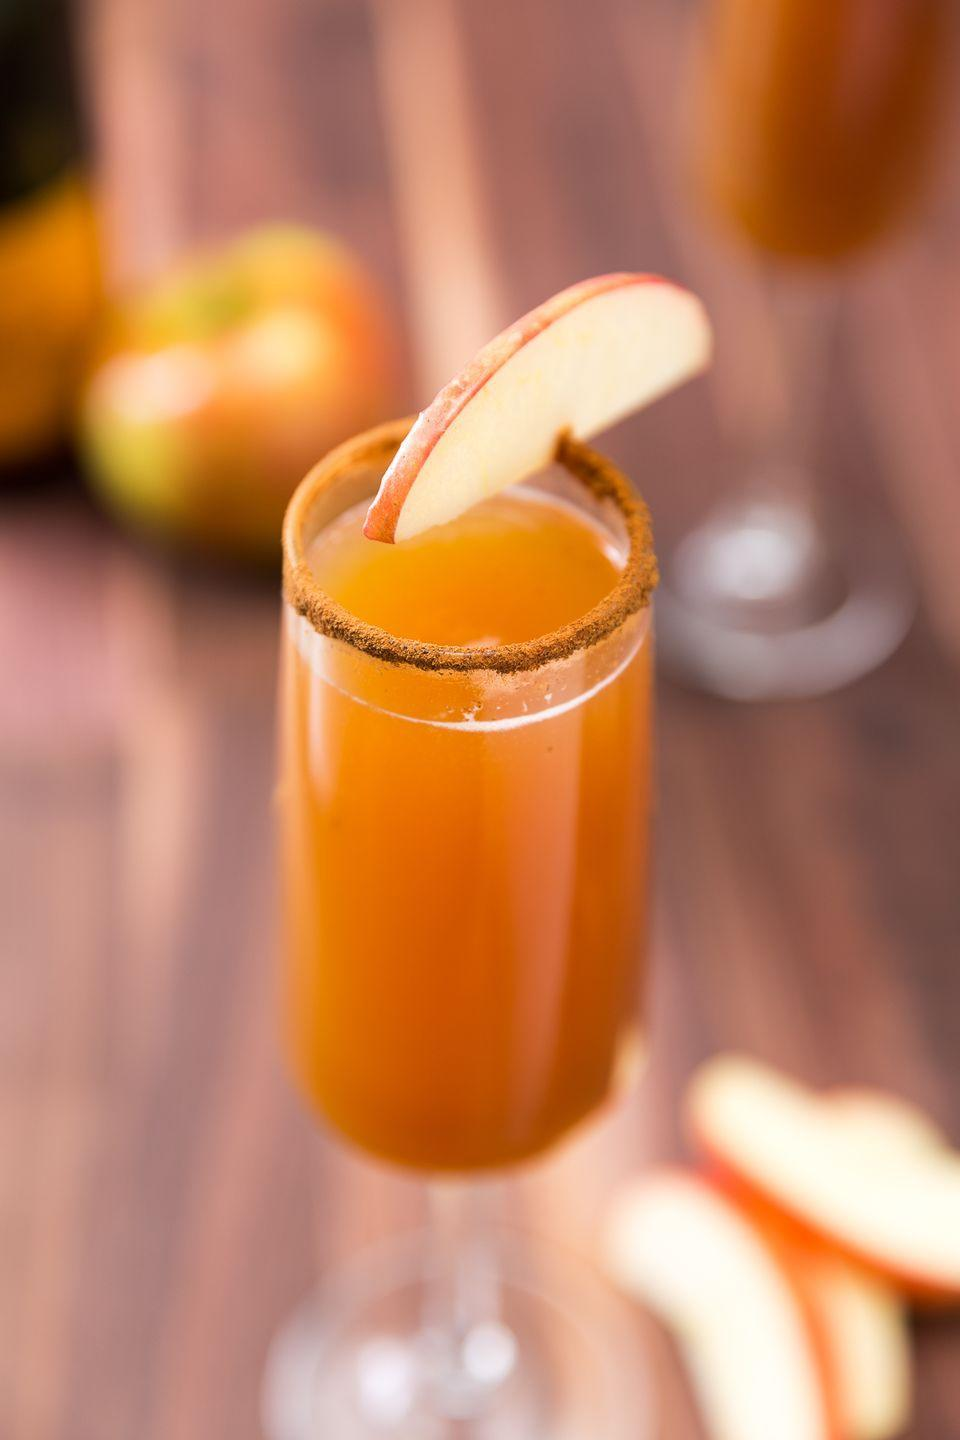 """<p>We figured out the genius behind the <a href=""""https://www.delish.com/holiday-recipes/thanksgiving/videos/a44921/apple-cider-mimosas/"""" rel=""""nofollow noopener"""" target=""""_blank"""" data-ylk=""""slk:apple cider mimosa"""" class=""""link rapid-noclick-resp"""">apple cider mimosa</a> a few weeks ago and we're <em>still </em>finding a reason to <del>chug</del> drink the combo. </p><p>Get the recipe from <a href=""""https://www.delish.com/cooking/recipe-ideas/recipes/a46963/apple-cider-mimosas-recipe/"""" rel=""""nofollow noopener"""" target=""""_blank"""" data-ylk=""""slk:Delish"""" class=""""link rapid-noclick-resp"""">Delish</a>.</p>"""